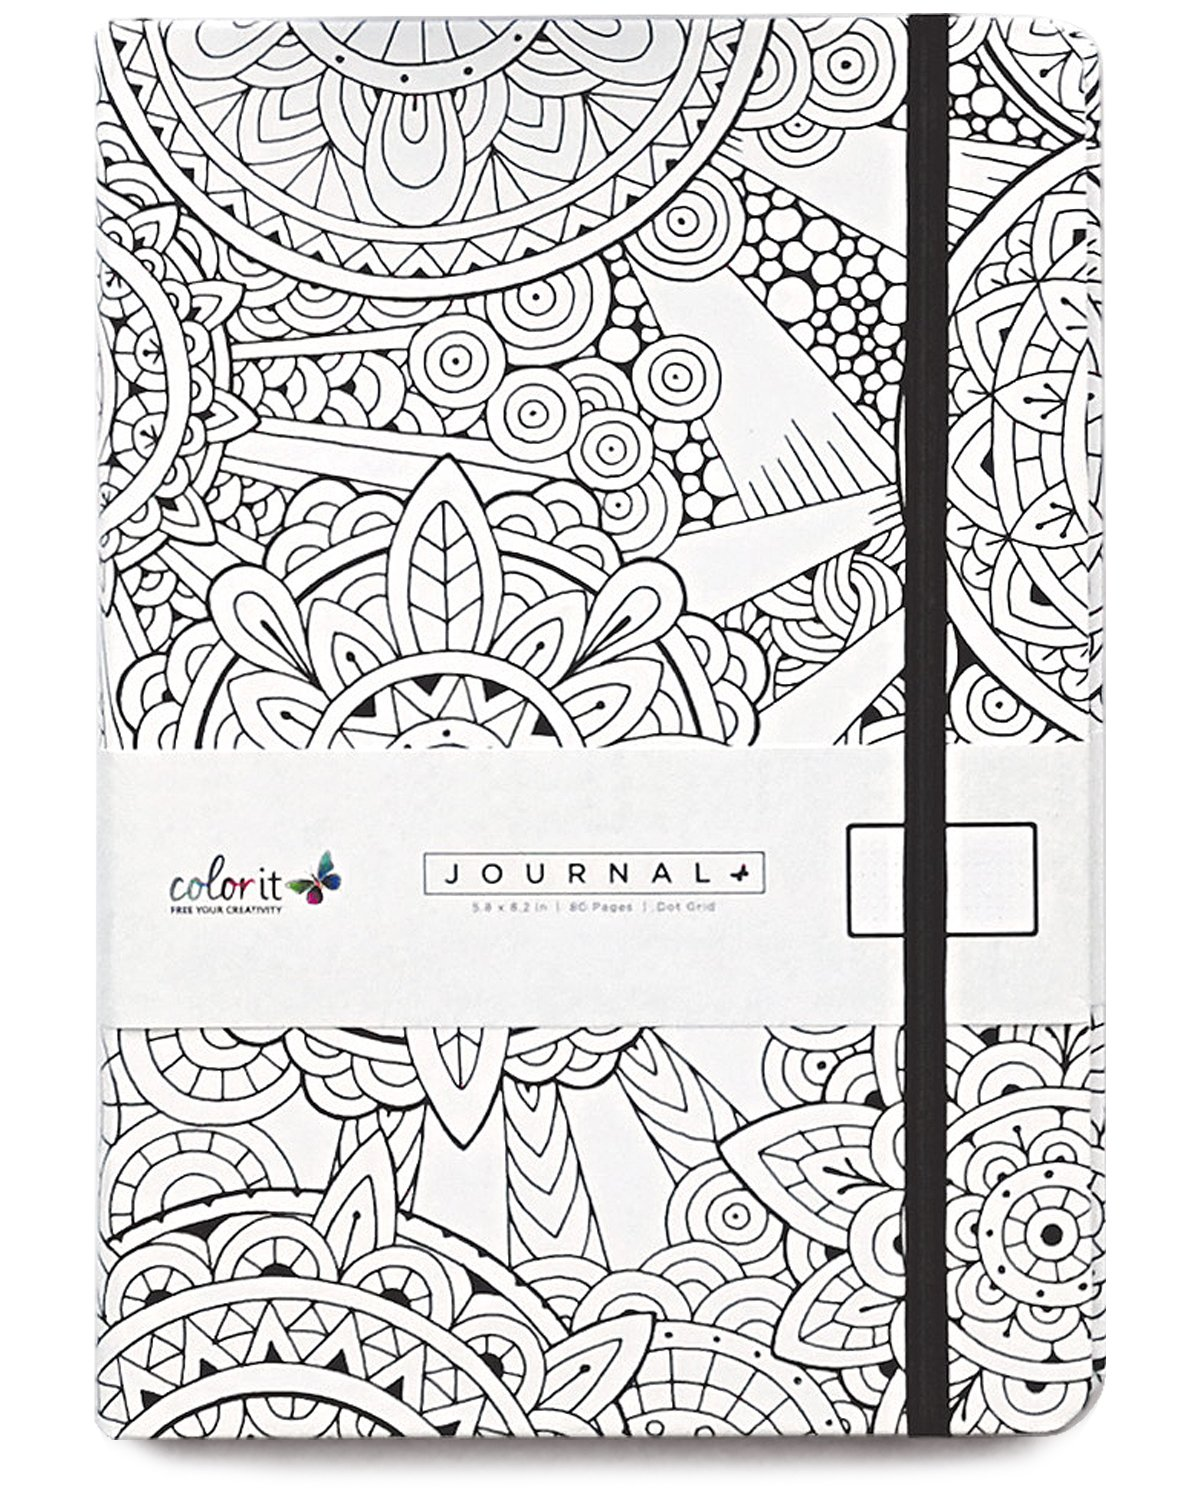 ColorIt Circle Notebook Journal 5.8 x 8.2, A5, 160 Dot Grid Pages, Hardcover, Elastic Band, Inner Pocket, Bookmark, Perforated Pages, Perfect Bullet Journal